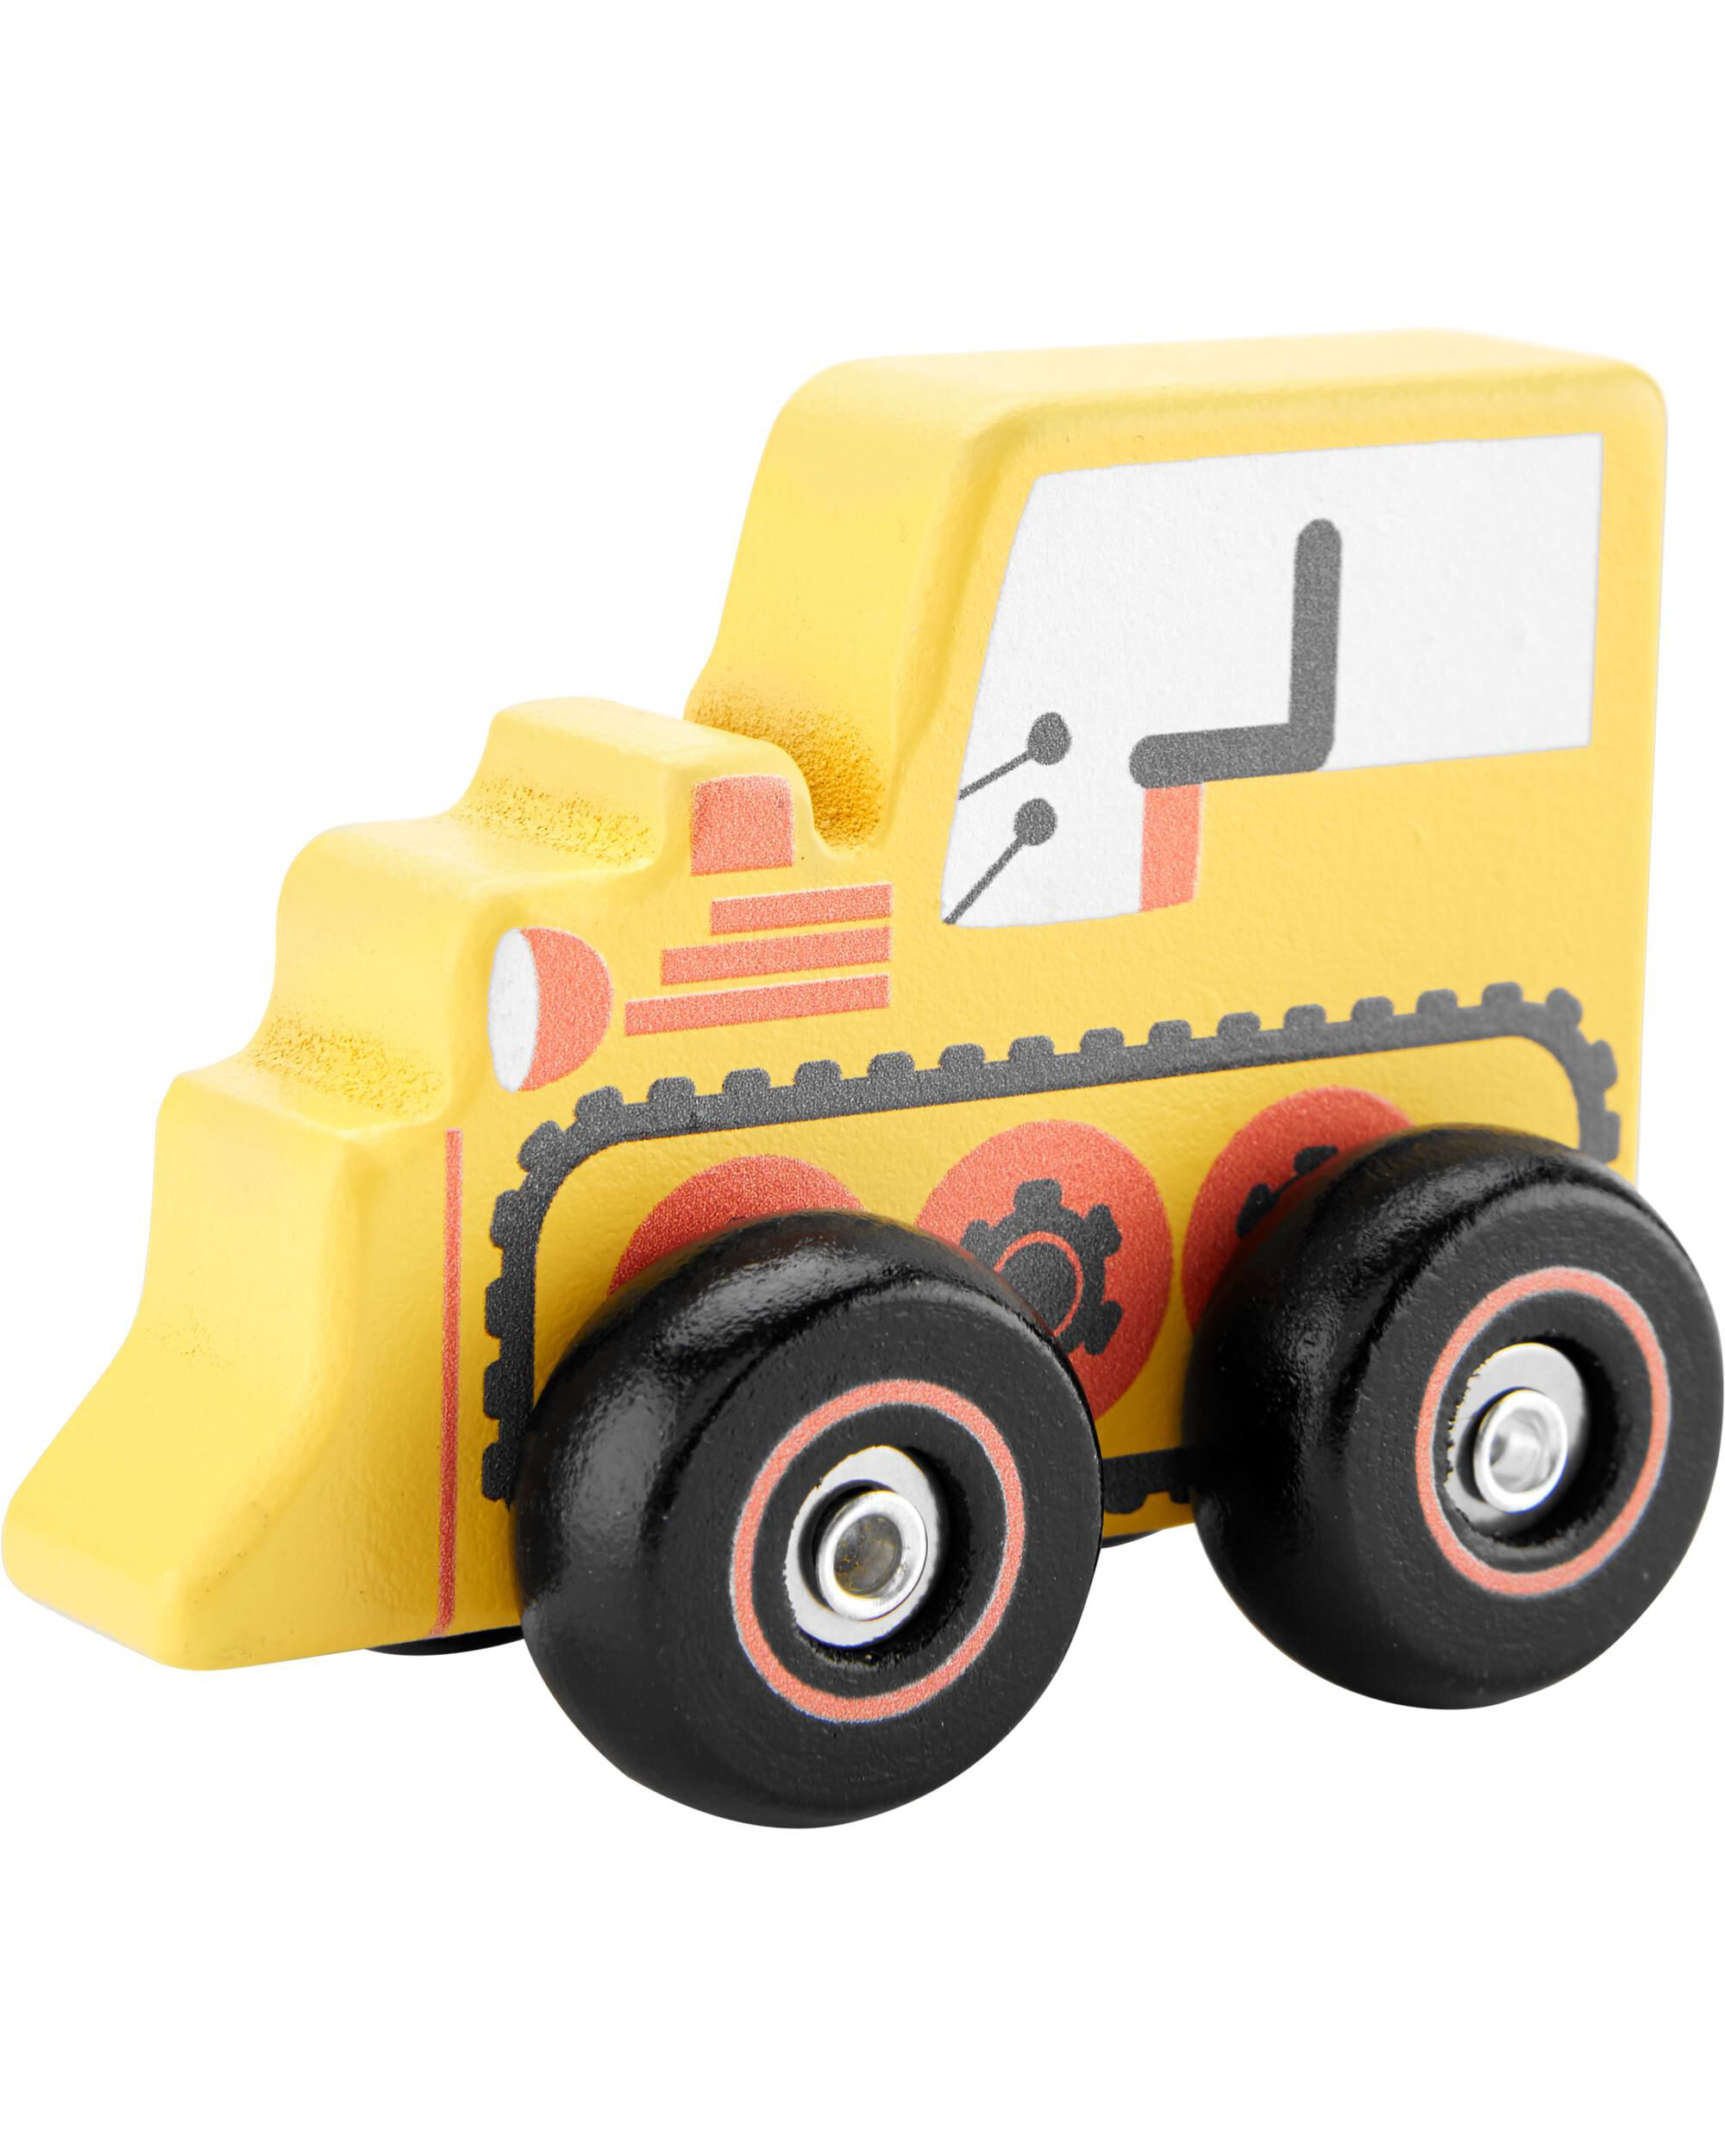 Oshkoshbgosh Bulldozer Pullback Wooden Car